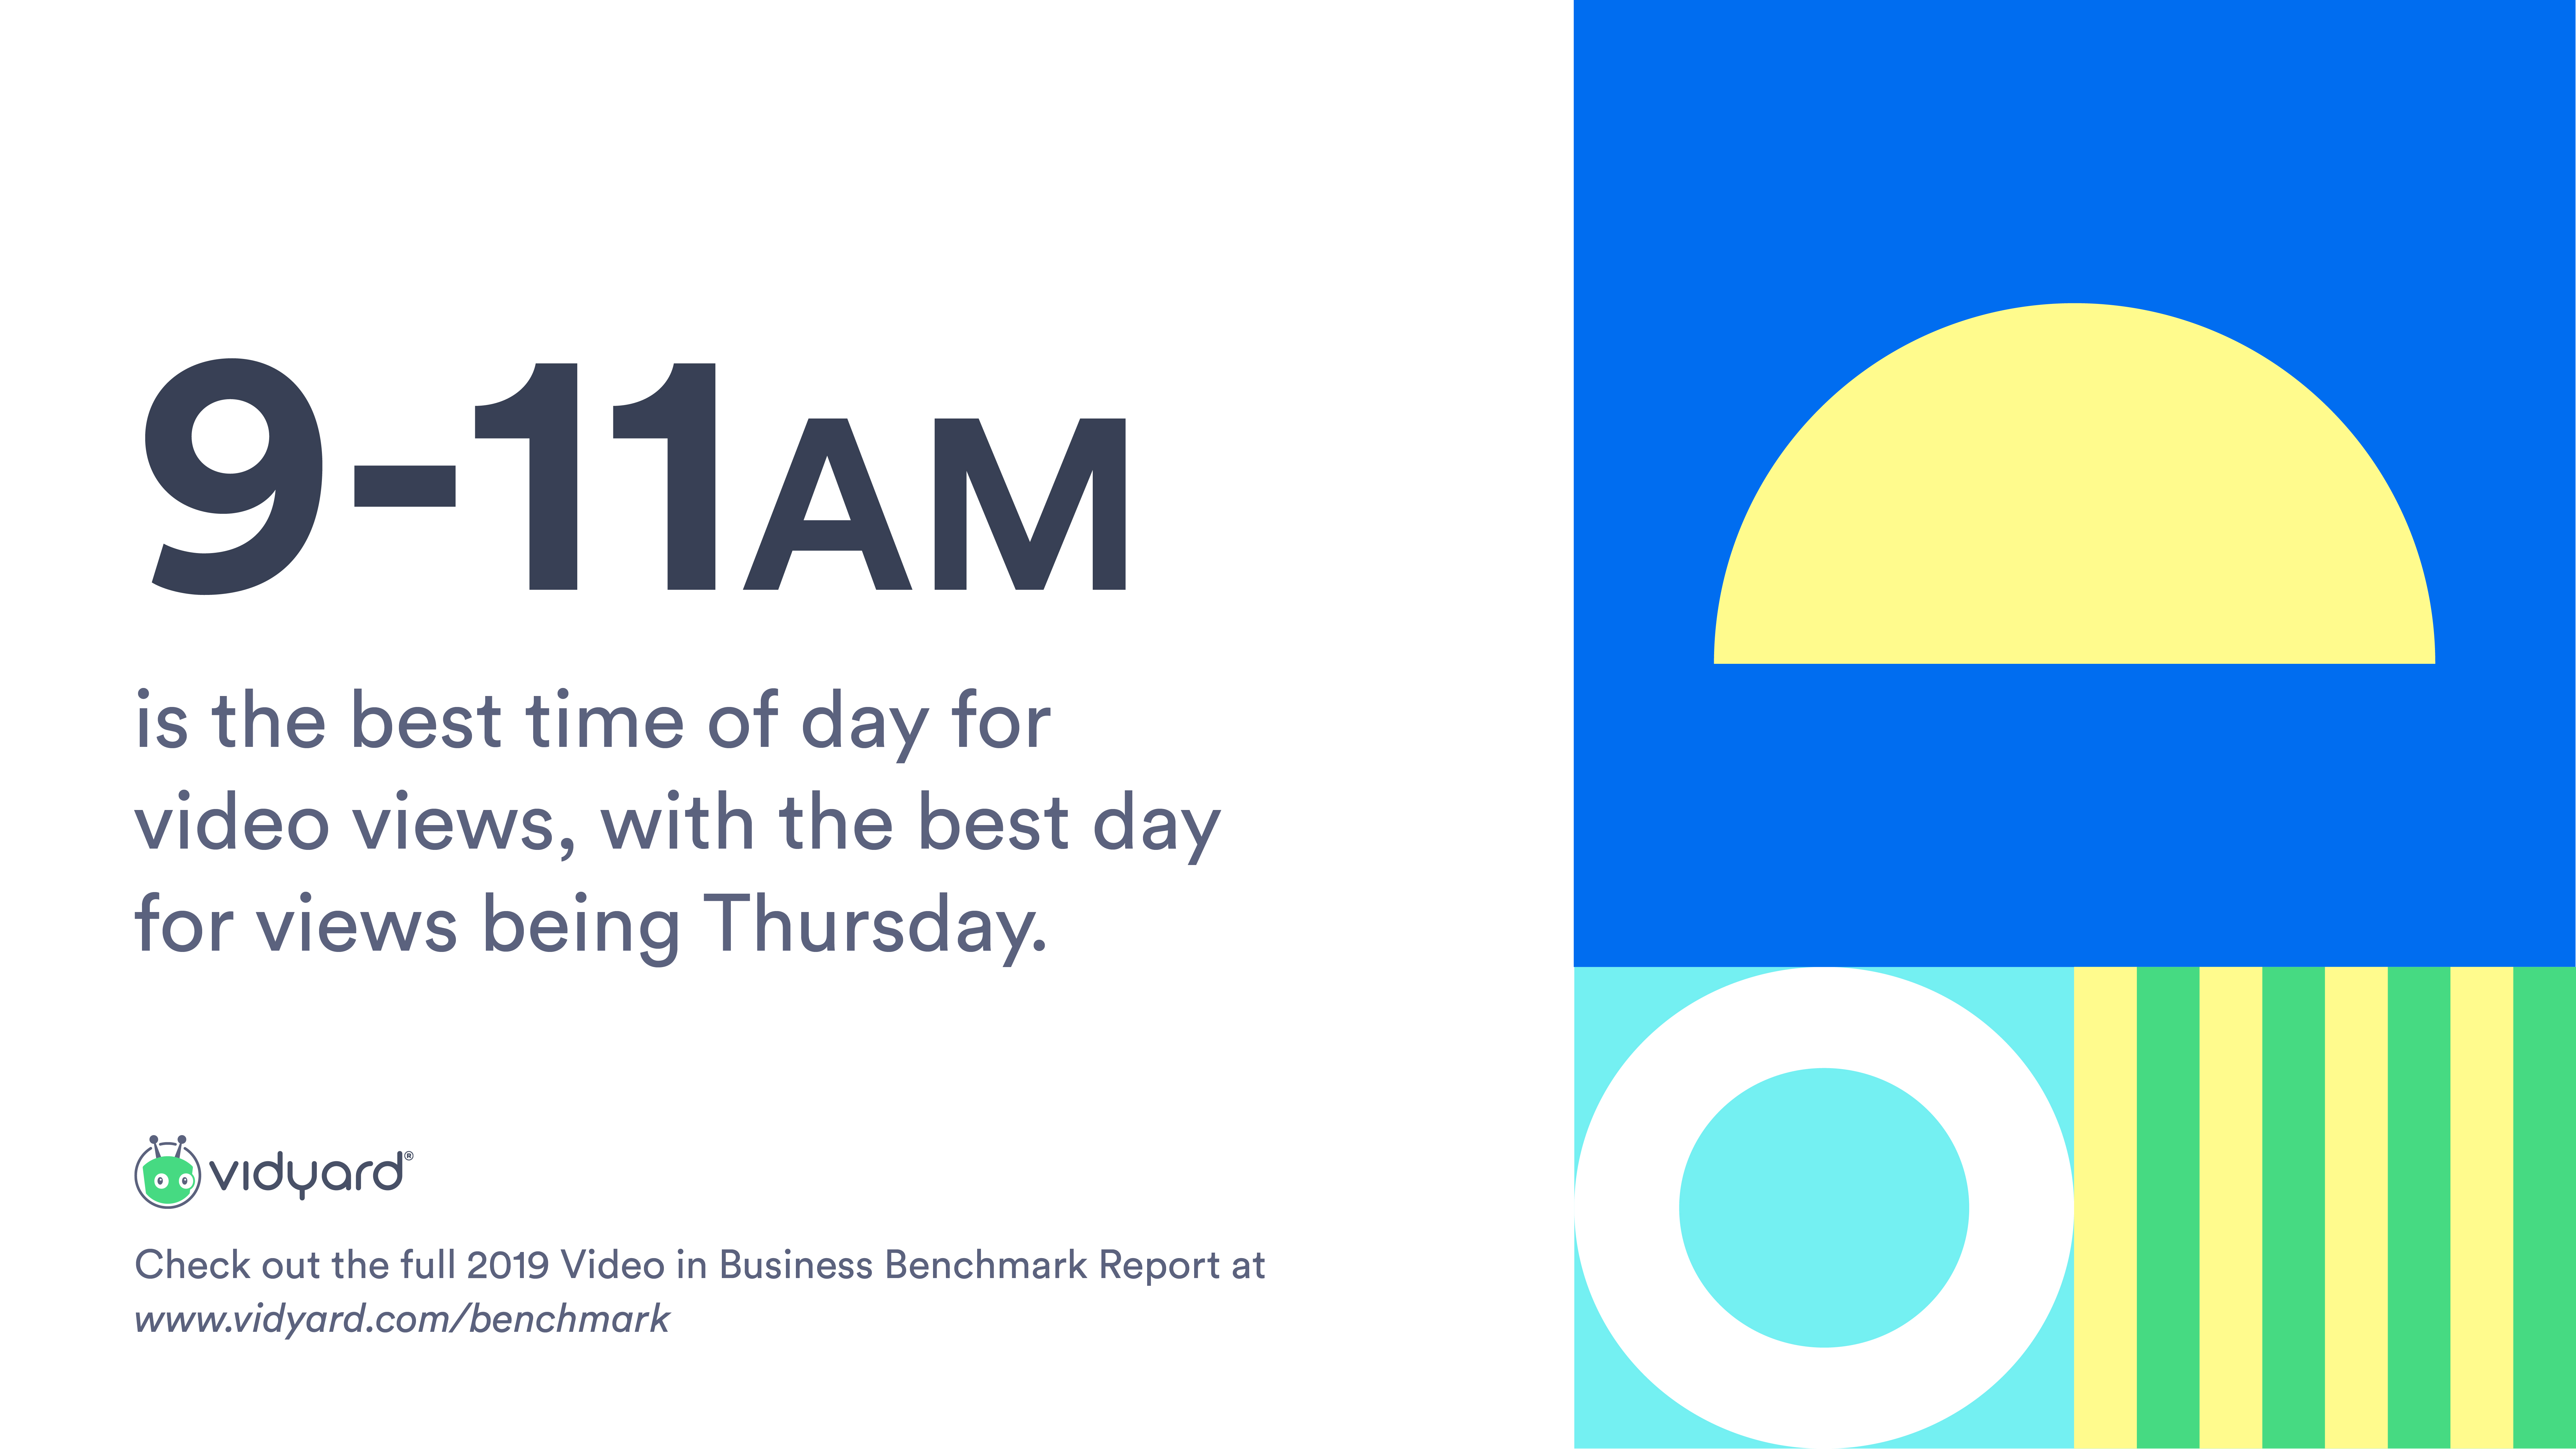 Mid-week is the most popular time for business video views, with Thursday seeing the most views overall. Viewing peaks in the morning, regardless of the day of the week, typically between 9 and 11 a.m. PST (12 to 2 p.m. EST).